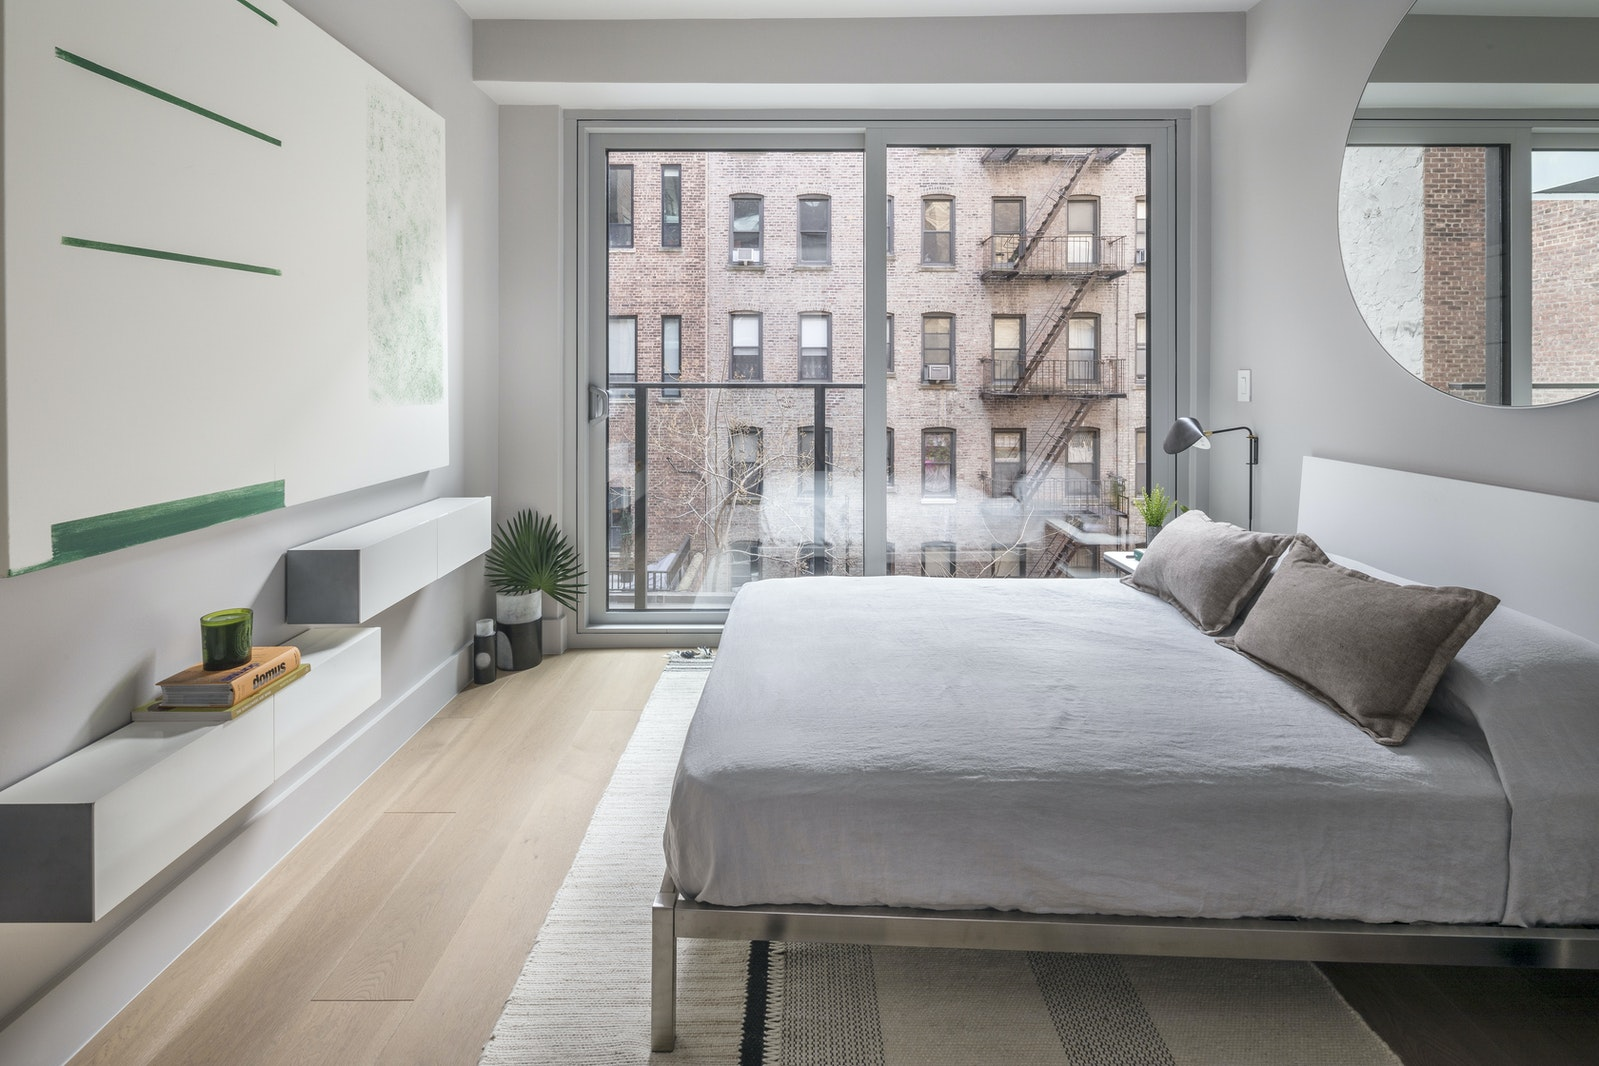 424 West 52nd Street 6, Midtown West, NYC, 10019, $2,369,000, Property For Sale, Halstead Real Estate, Photo 7